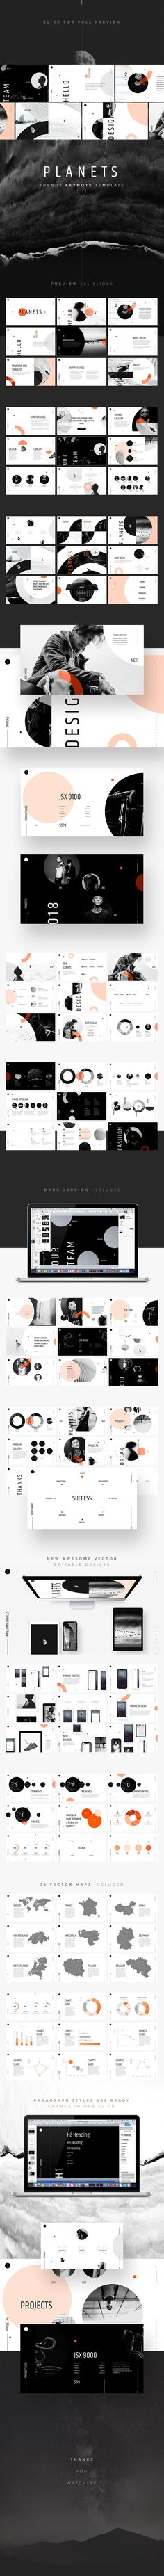 PLANETS Keynote Template by @diisakov on @creativemarket . Included 150 unique and trending slides. Go to shop and enjoy! #template #powerpoint #slide #creativemarket